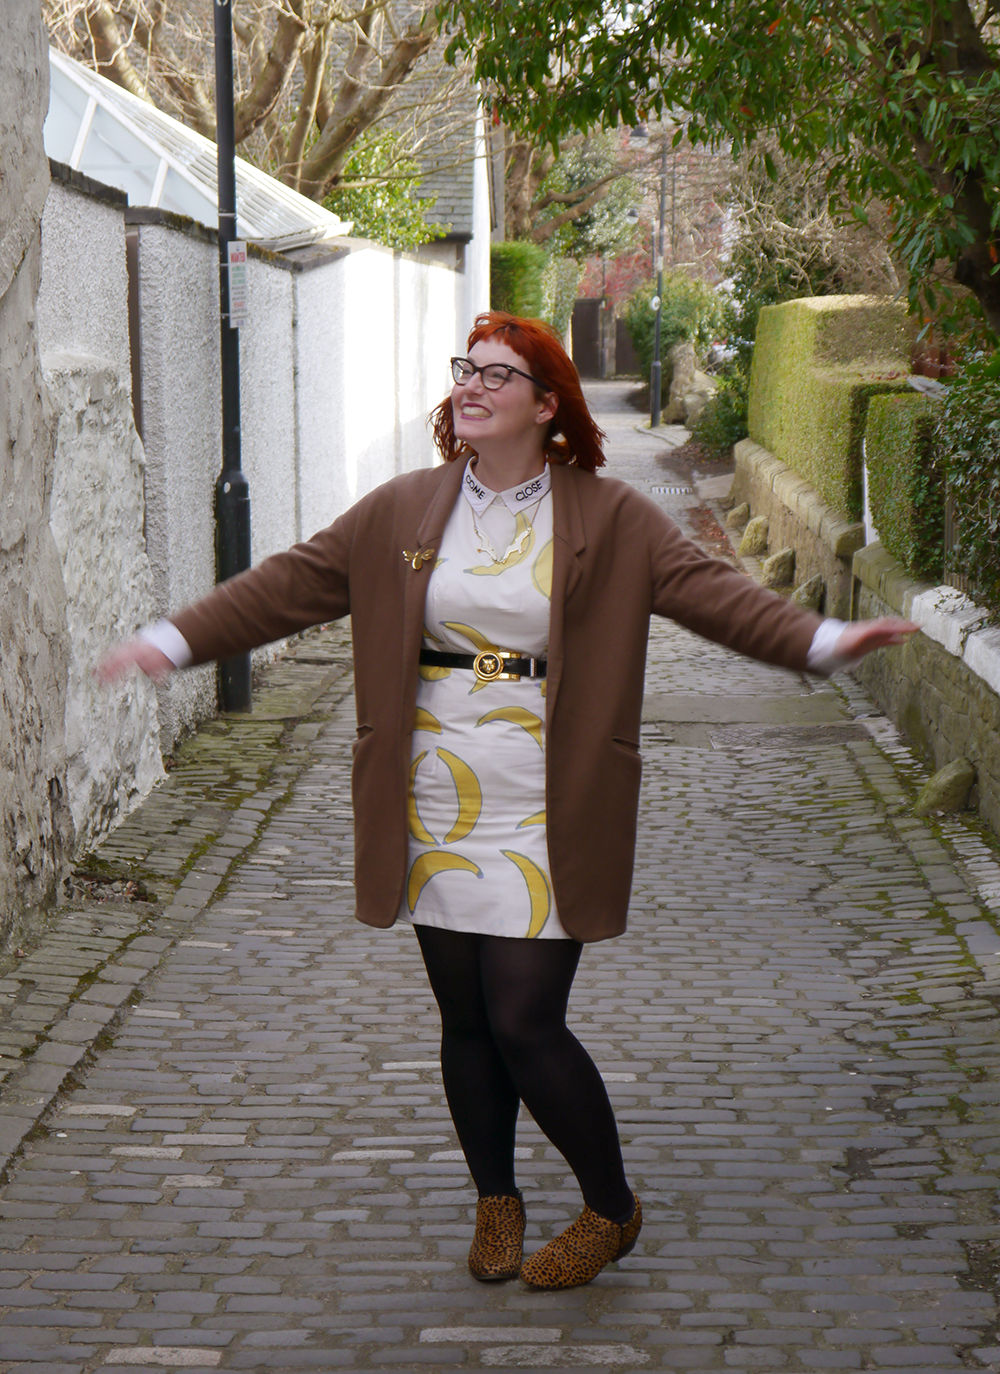 What Helen Wore, Scottish Blogger, Dundee, Dundee Blogger, Red Head, Ginger, Banana Dress, Claptrap Boutique, Duo Boots, Leopard Print Boots, Sludge Coat, Karen Mabon Seagull Necklace, Monki Shirt, Come Close Shirt, Scottish Style, Tiger Belt, Cat Eye Glasses